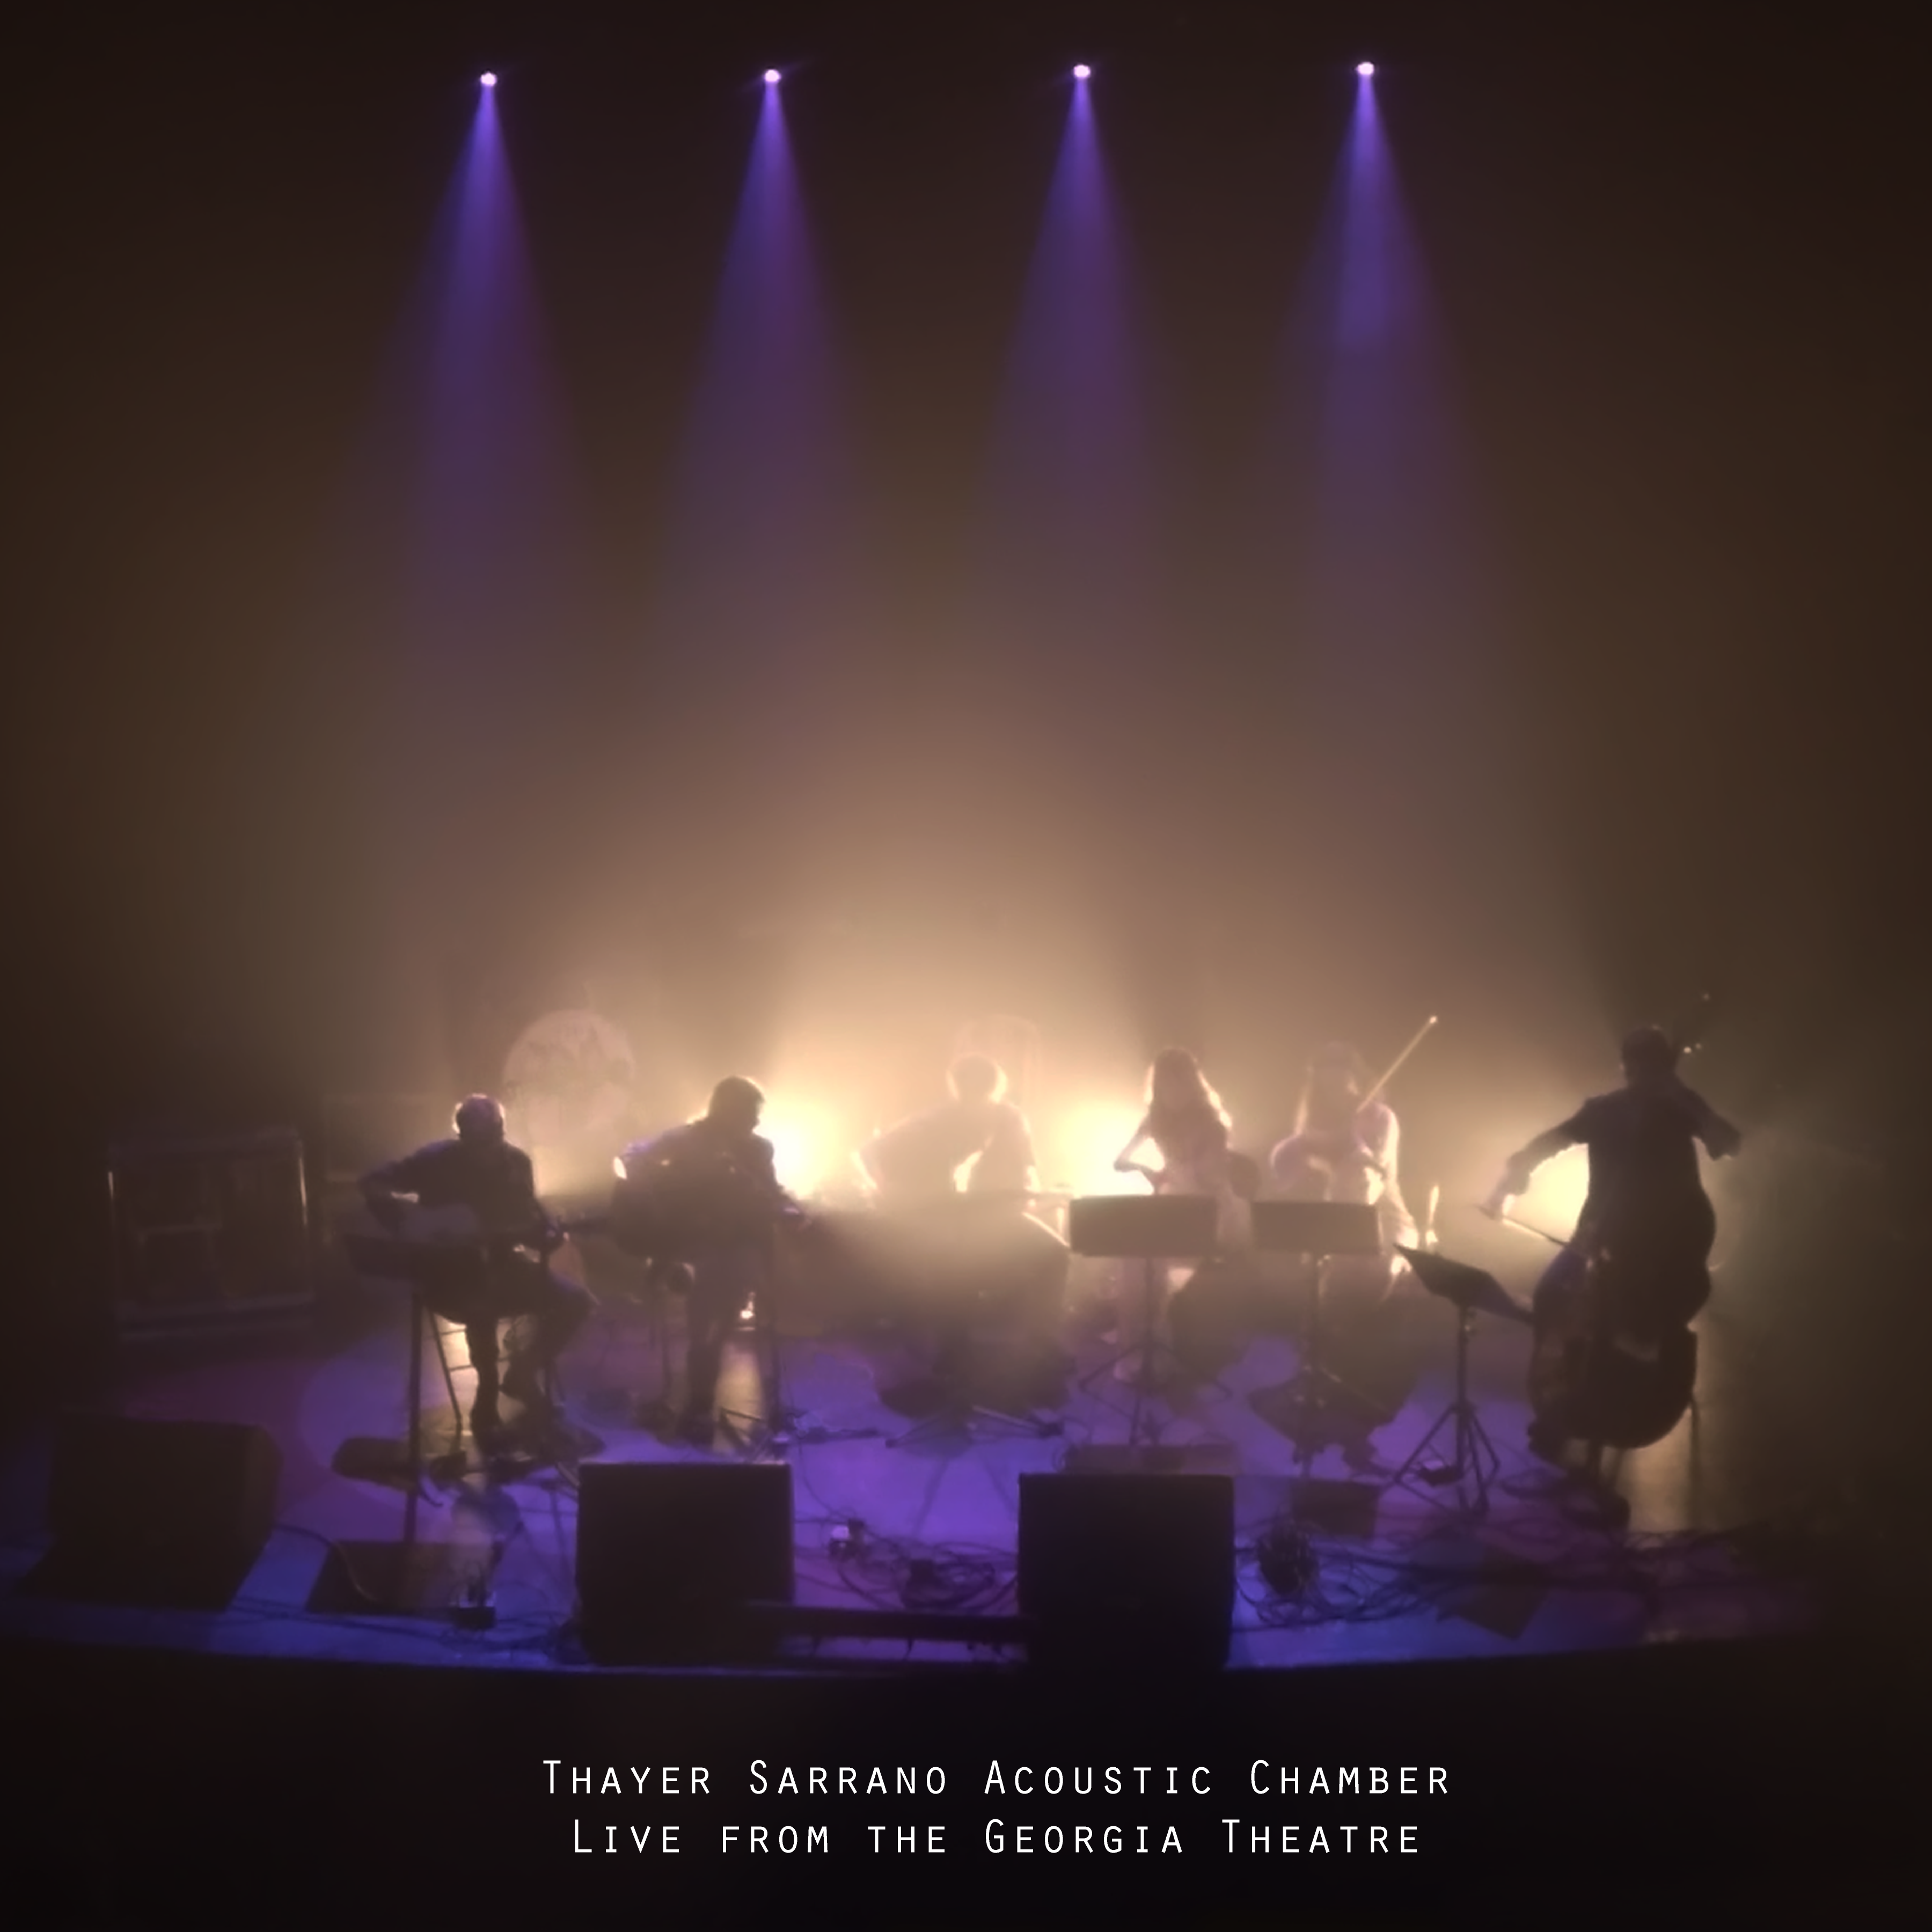 Thayer Sarrano Acoustic Chamber - Live from the Georgia Theatre